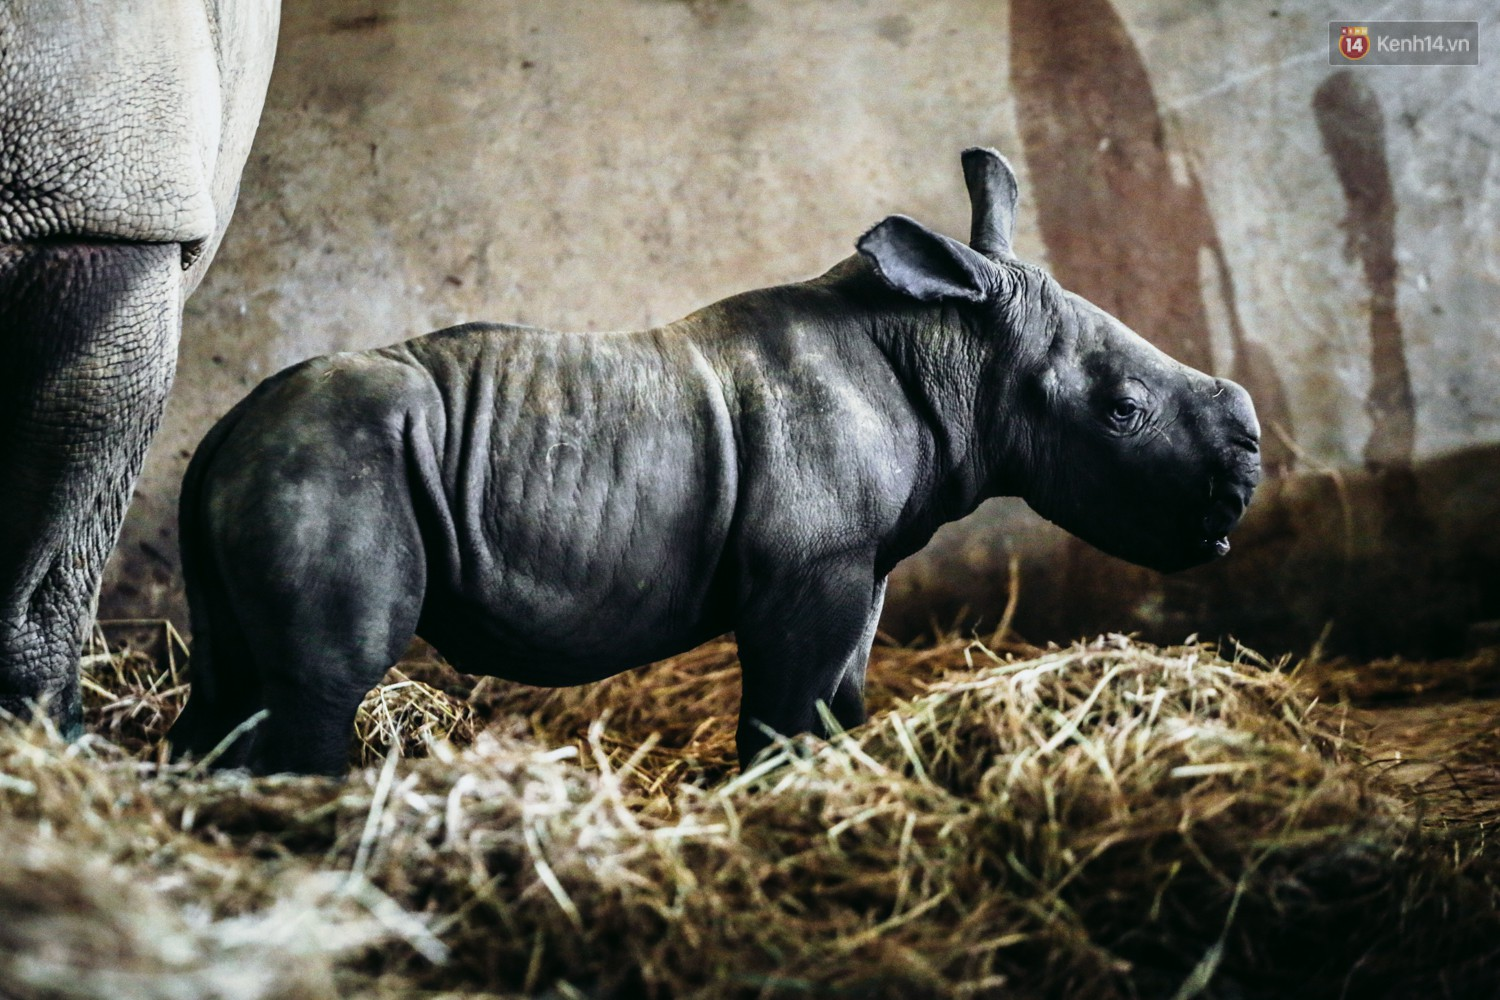 The closure of two rare white rhinos has just been born in Vietnam for the past decade - Photo 9.